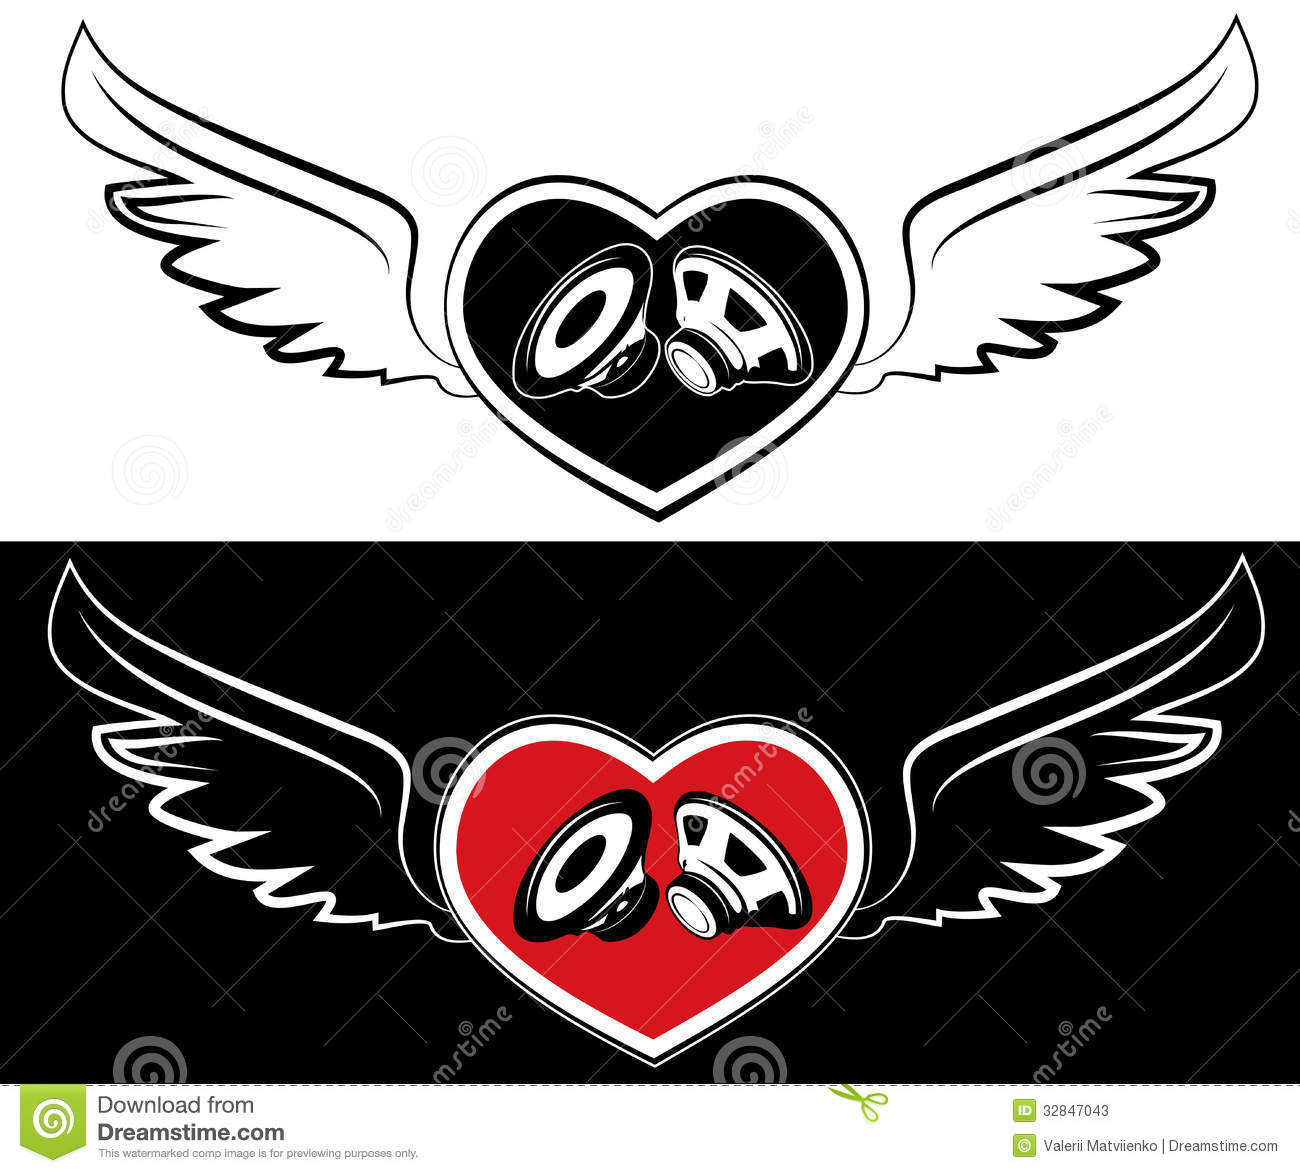 heart speaker and wings tattoo background stock photos image 32847043. Black Bedroom Furniture Sets. Home Design Ideas